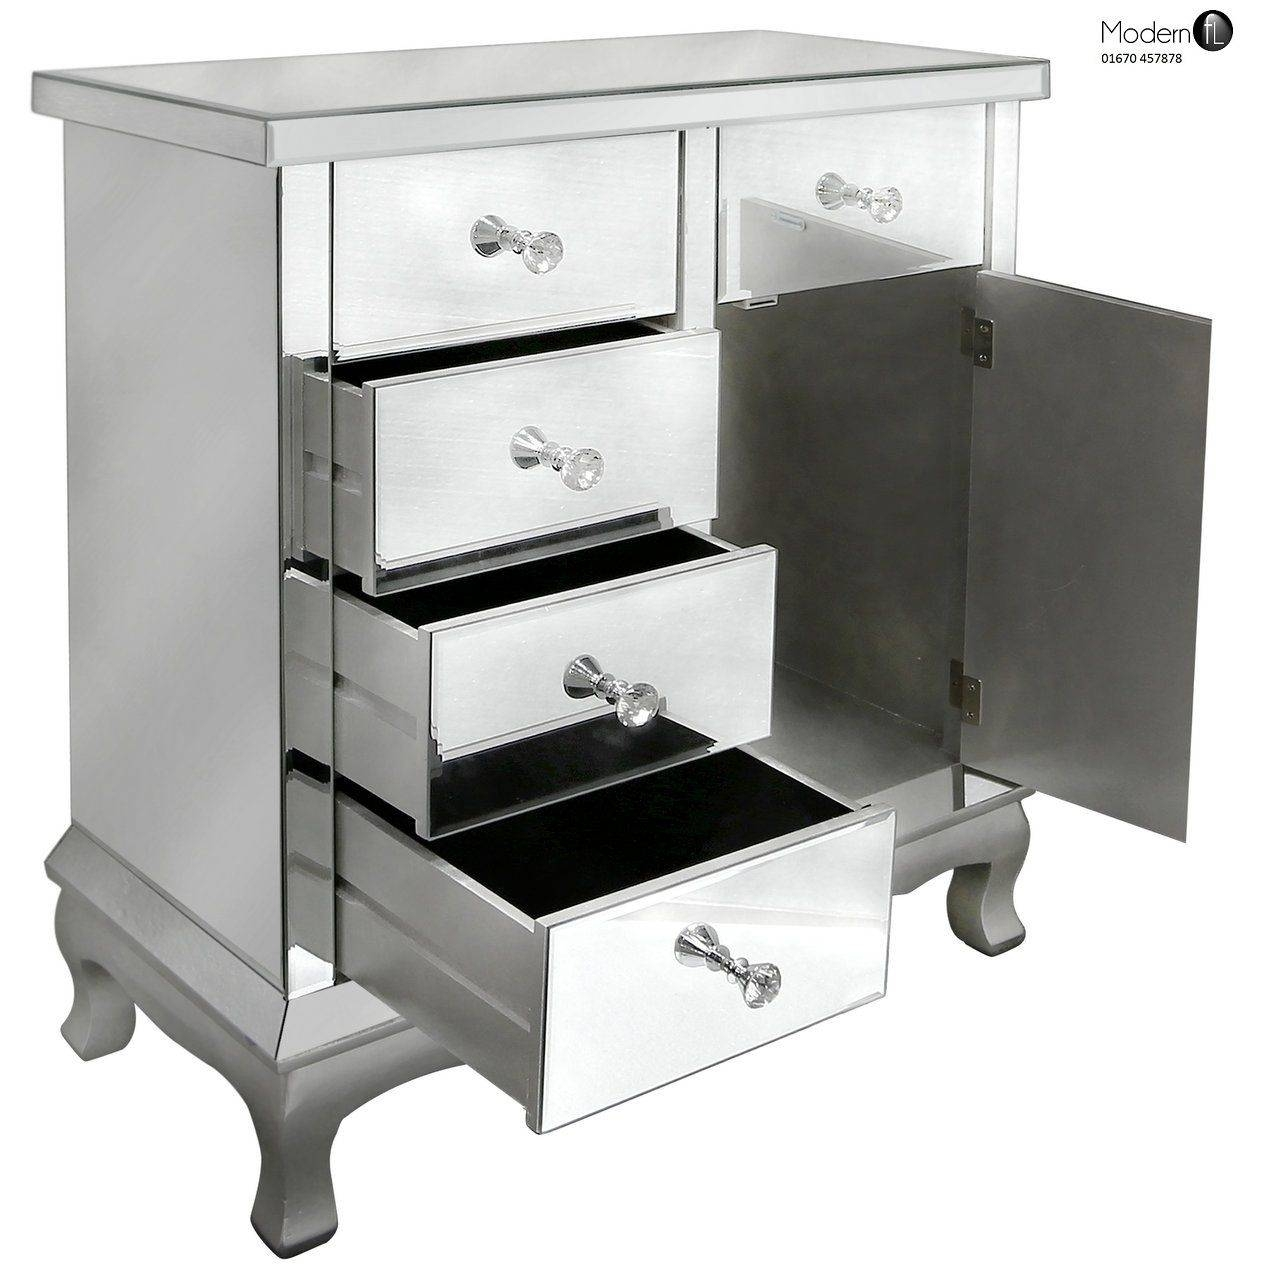 Venetian Mirrored Sideboard With 4 Drawers And 1 Door pertaining to Venetian Mirrored Sideboards (Image 29 of 30)